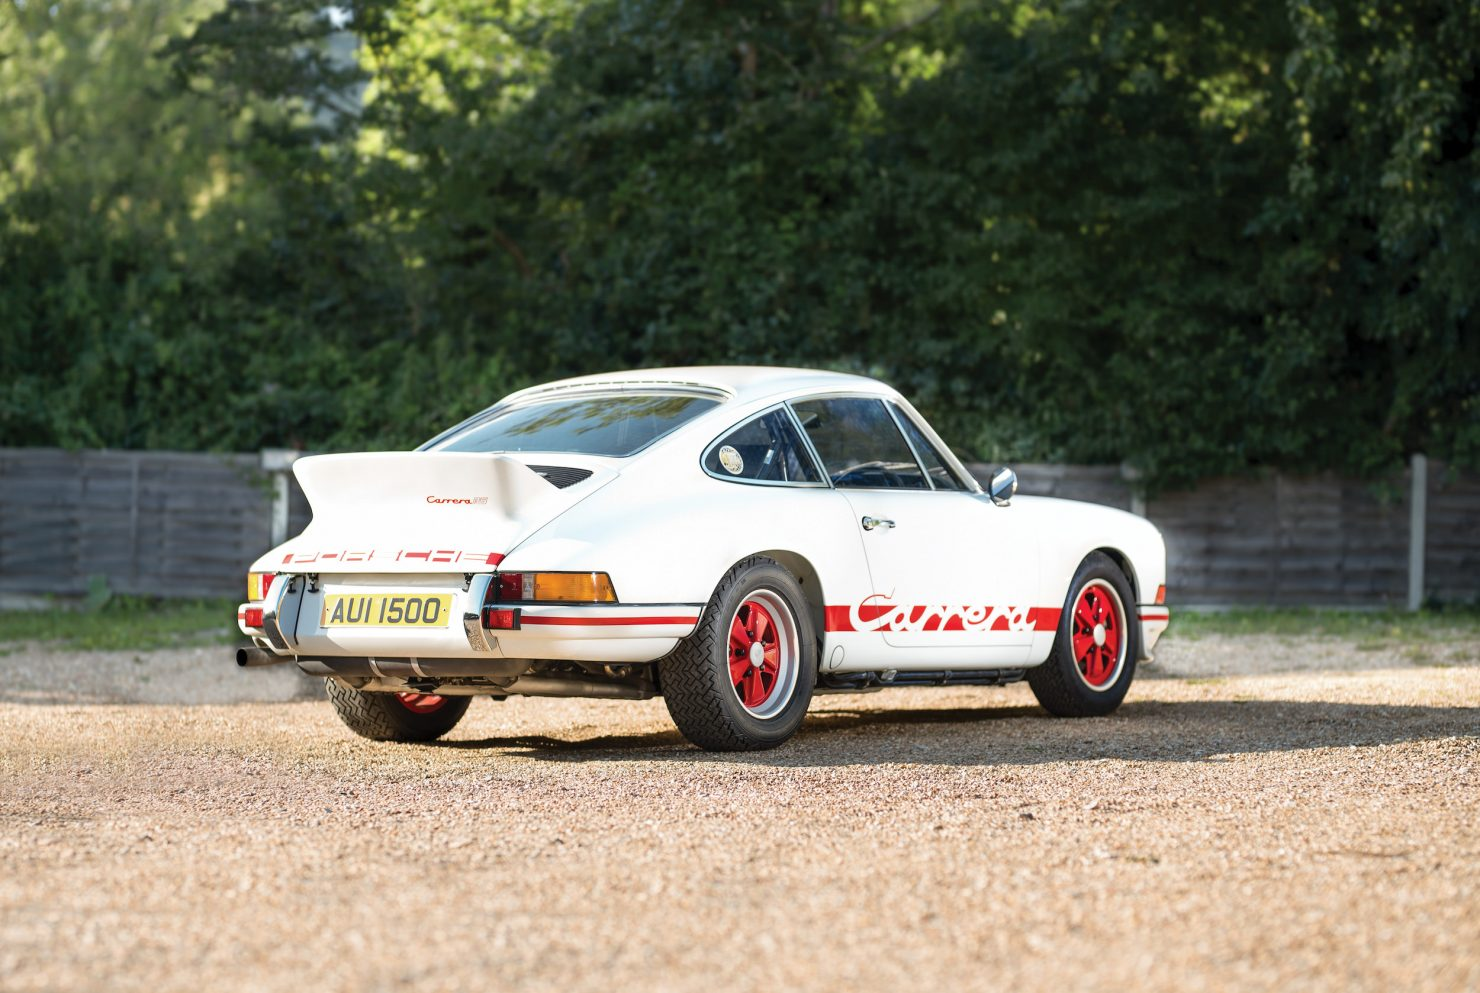 Porsche 911 Carrera RS 2.7 1 1480x993 - 1973 Porsche 911 Carrera RS 2.7 Lightweight